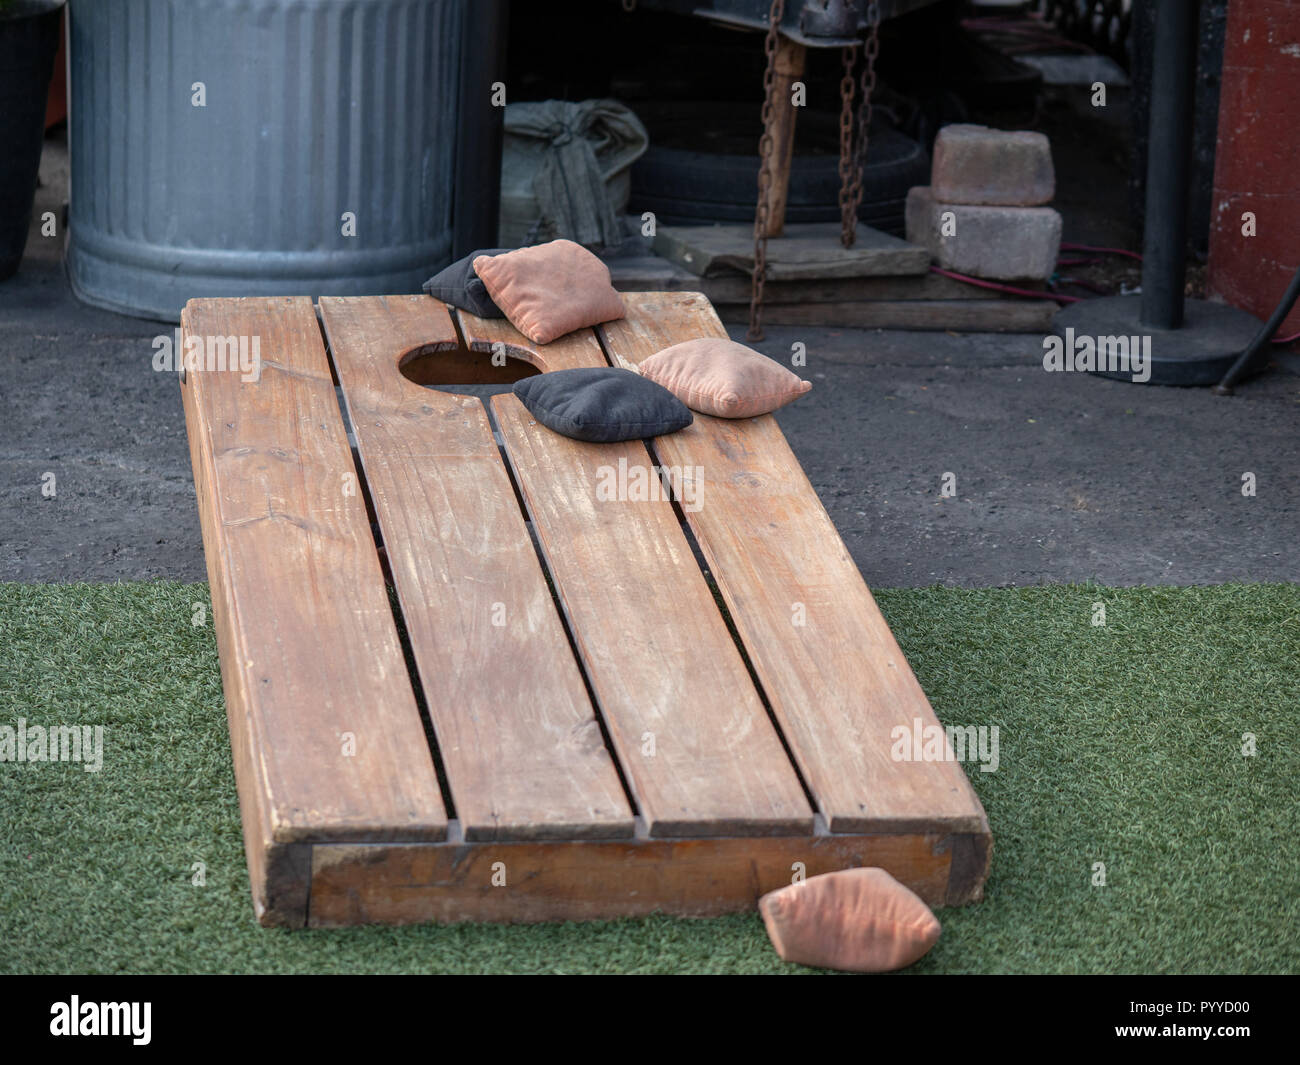 Sets of beanbags in competitive game of cornhole on a lumber platform - Stock Image